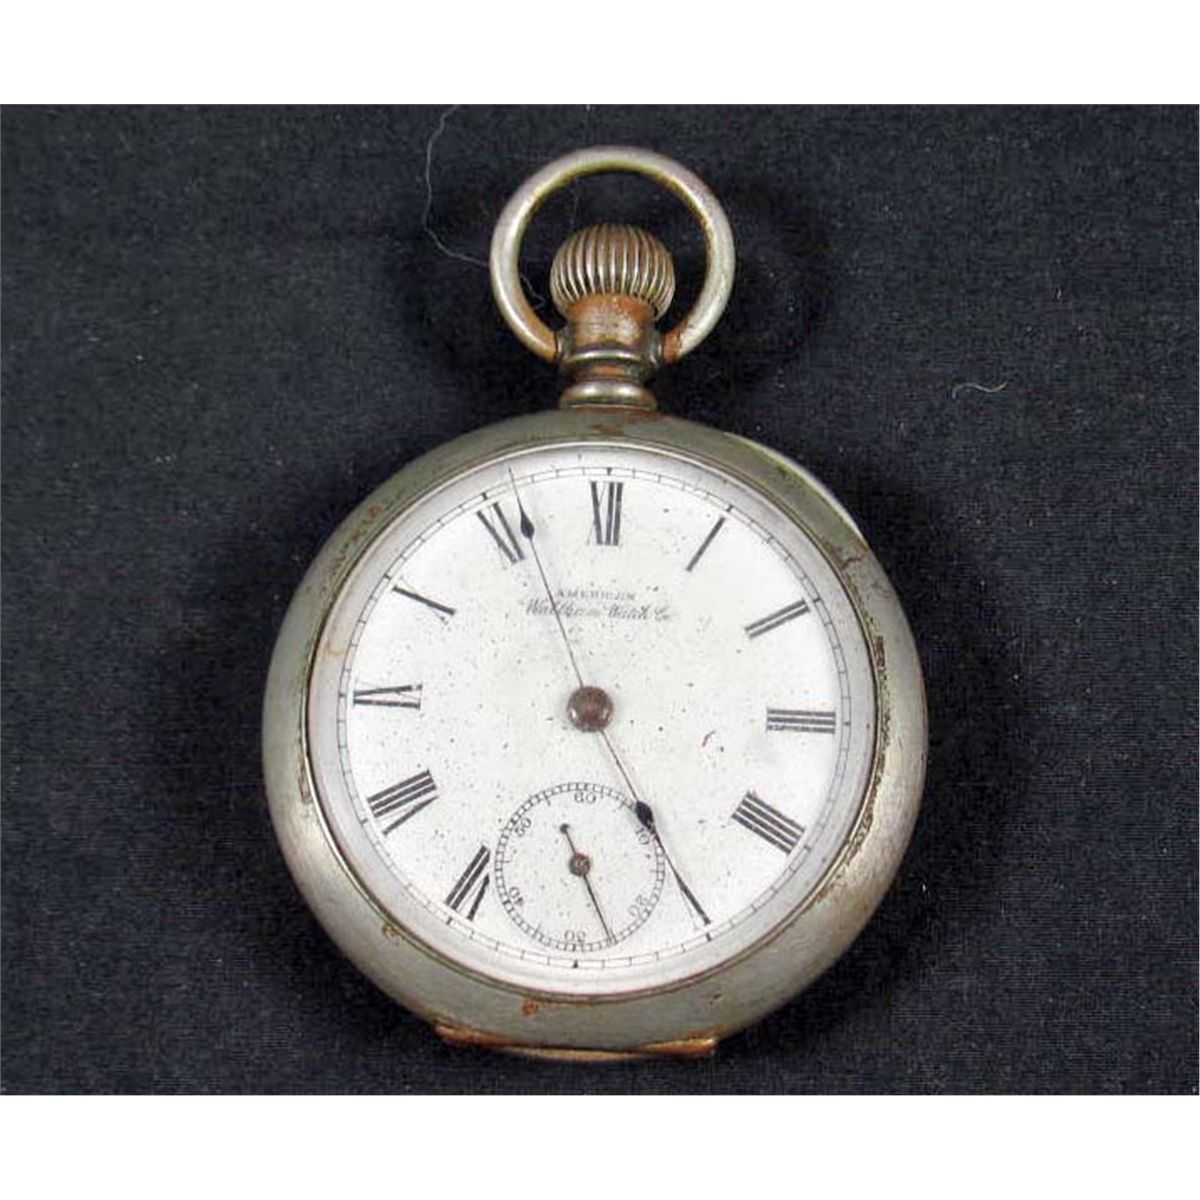 dating american waltham pocket watches Waltham pocket watch serial numbers use this table to look up your waltham pocket watch serial number of and hence the year of manufacture when looking for the number on your watch you should be looking at the serial number on the movement, not the case.